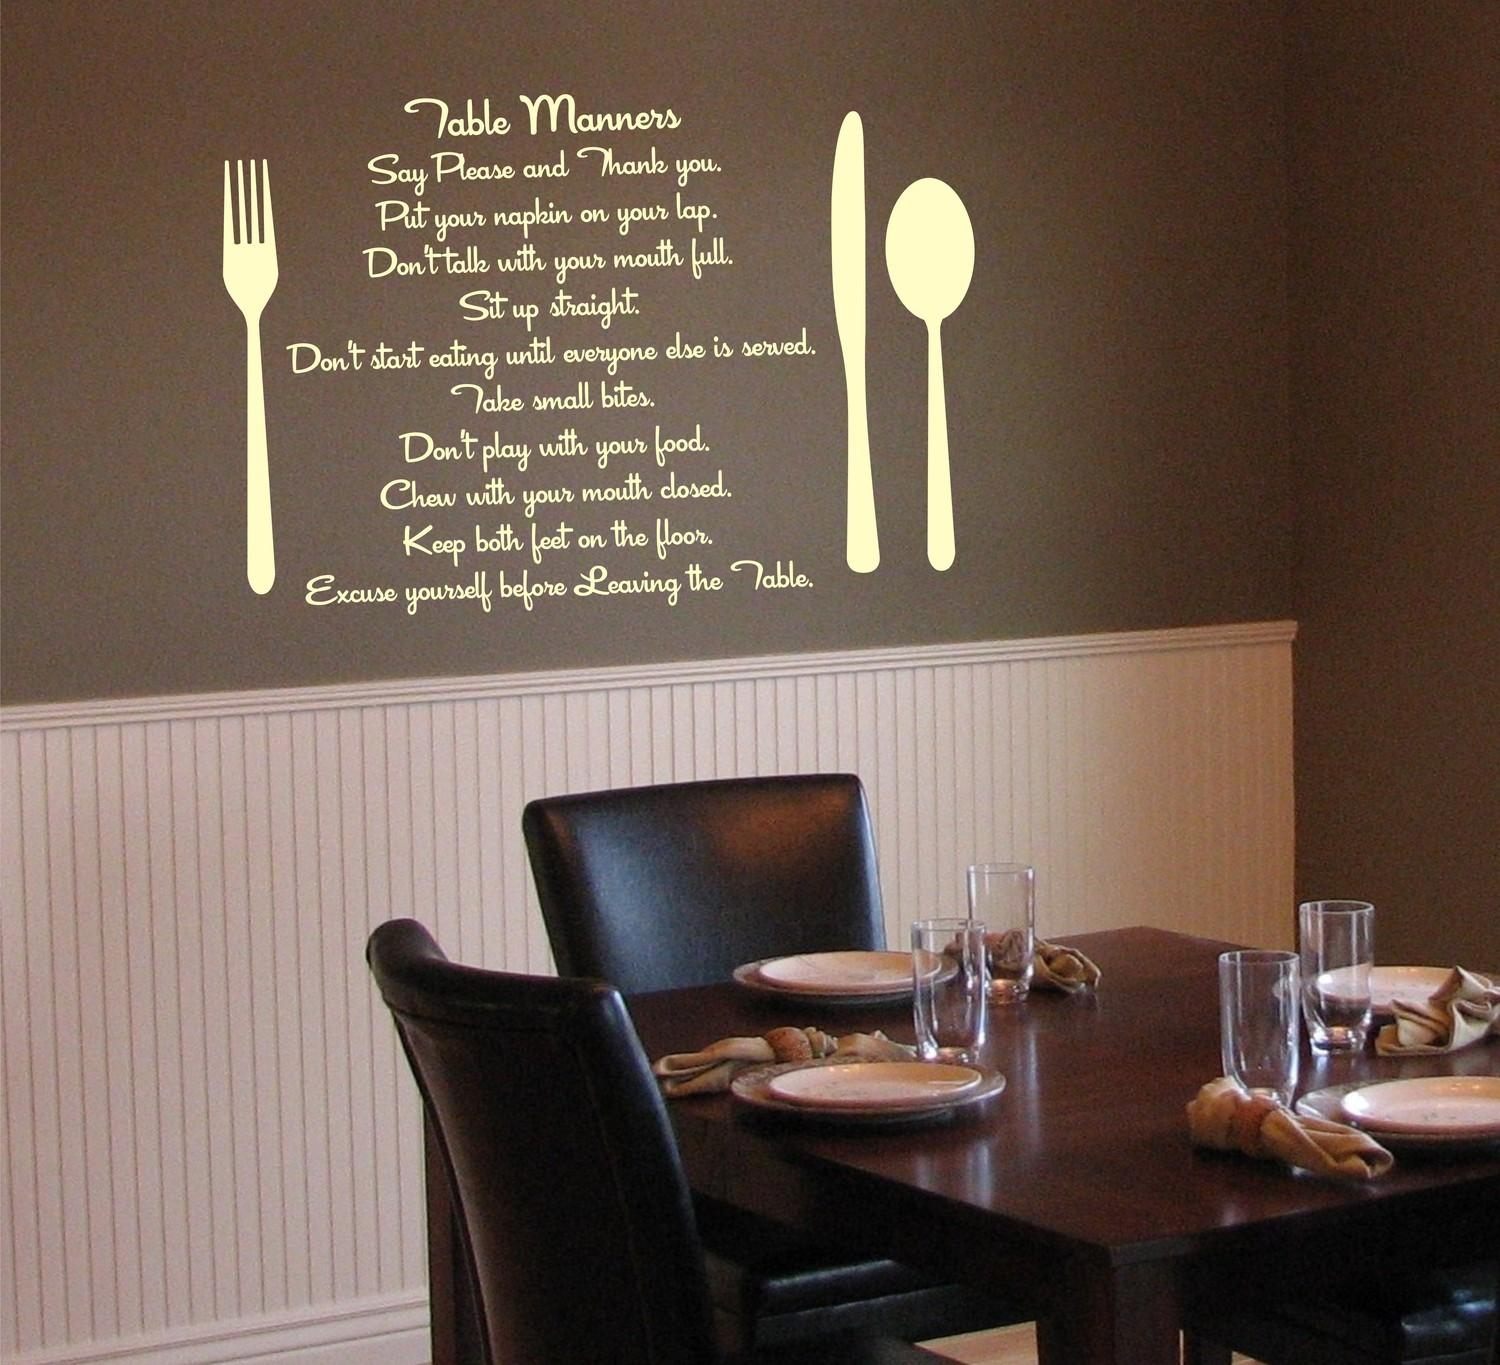 Dining Room Vinyl Wall Decals » Dining Room Decor Ideas And Throughout As For Me And My House Vinyl Wall Art (Image 10 of 20)